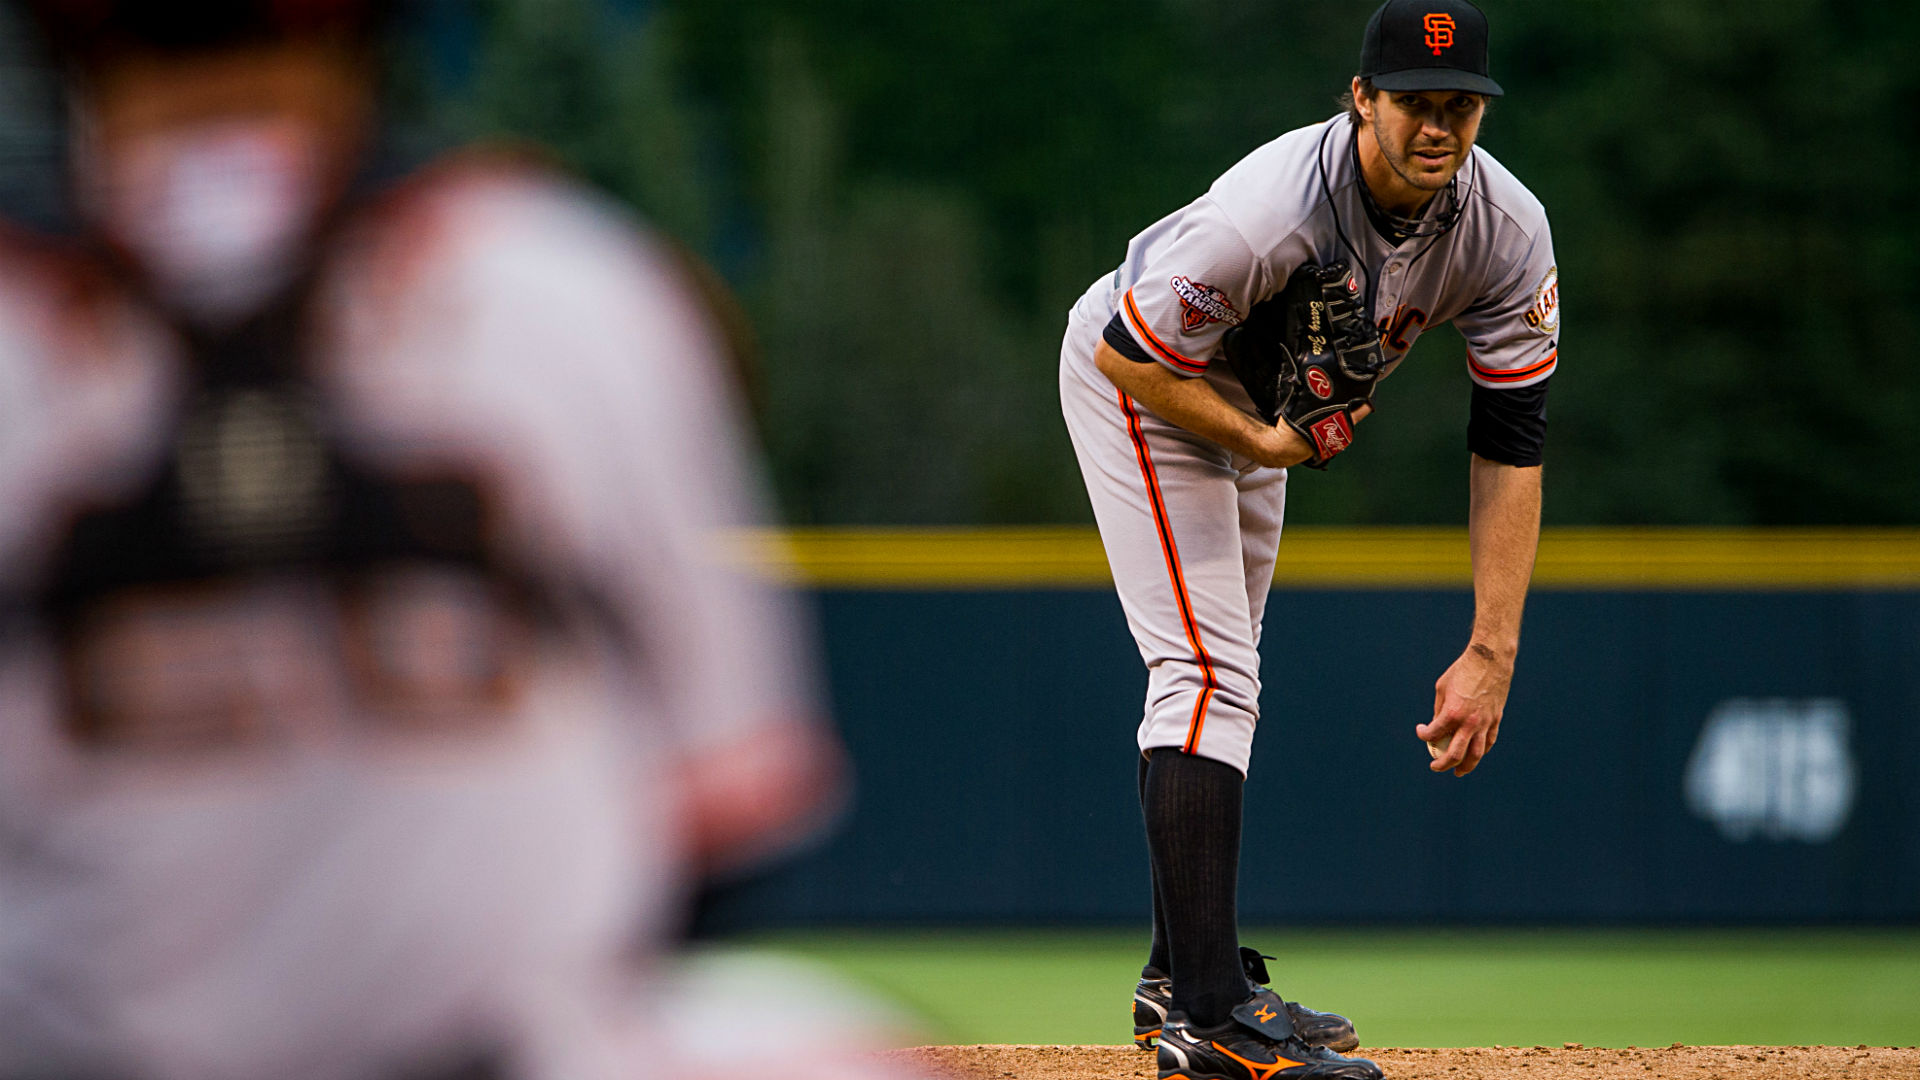 Barry-Zito-111314-Getty-FTR.jpg